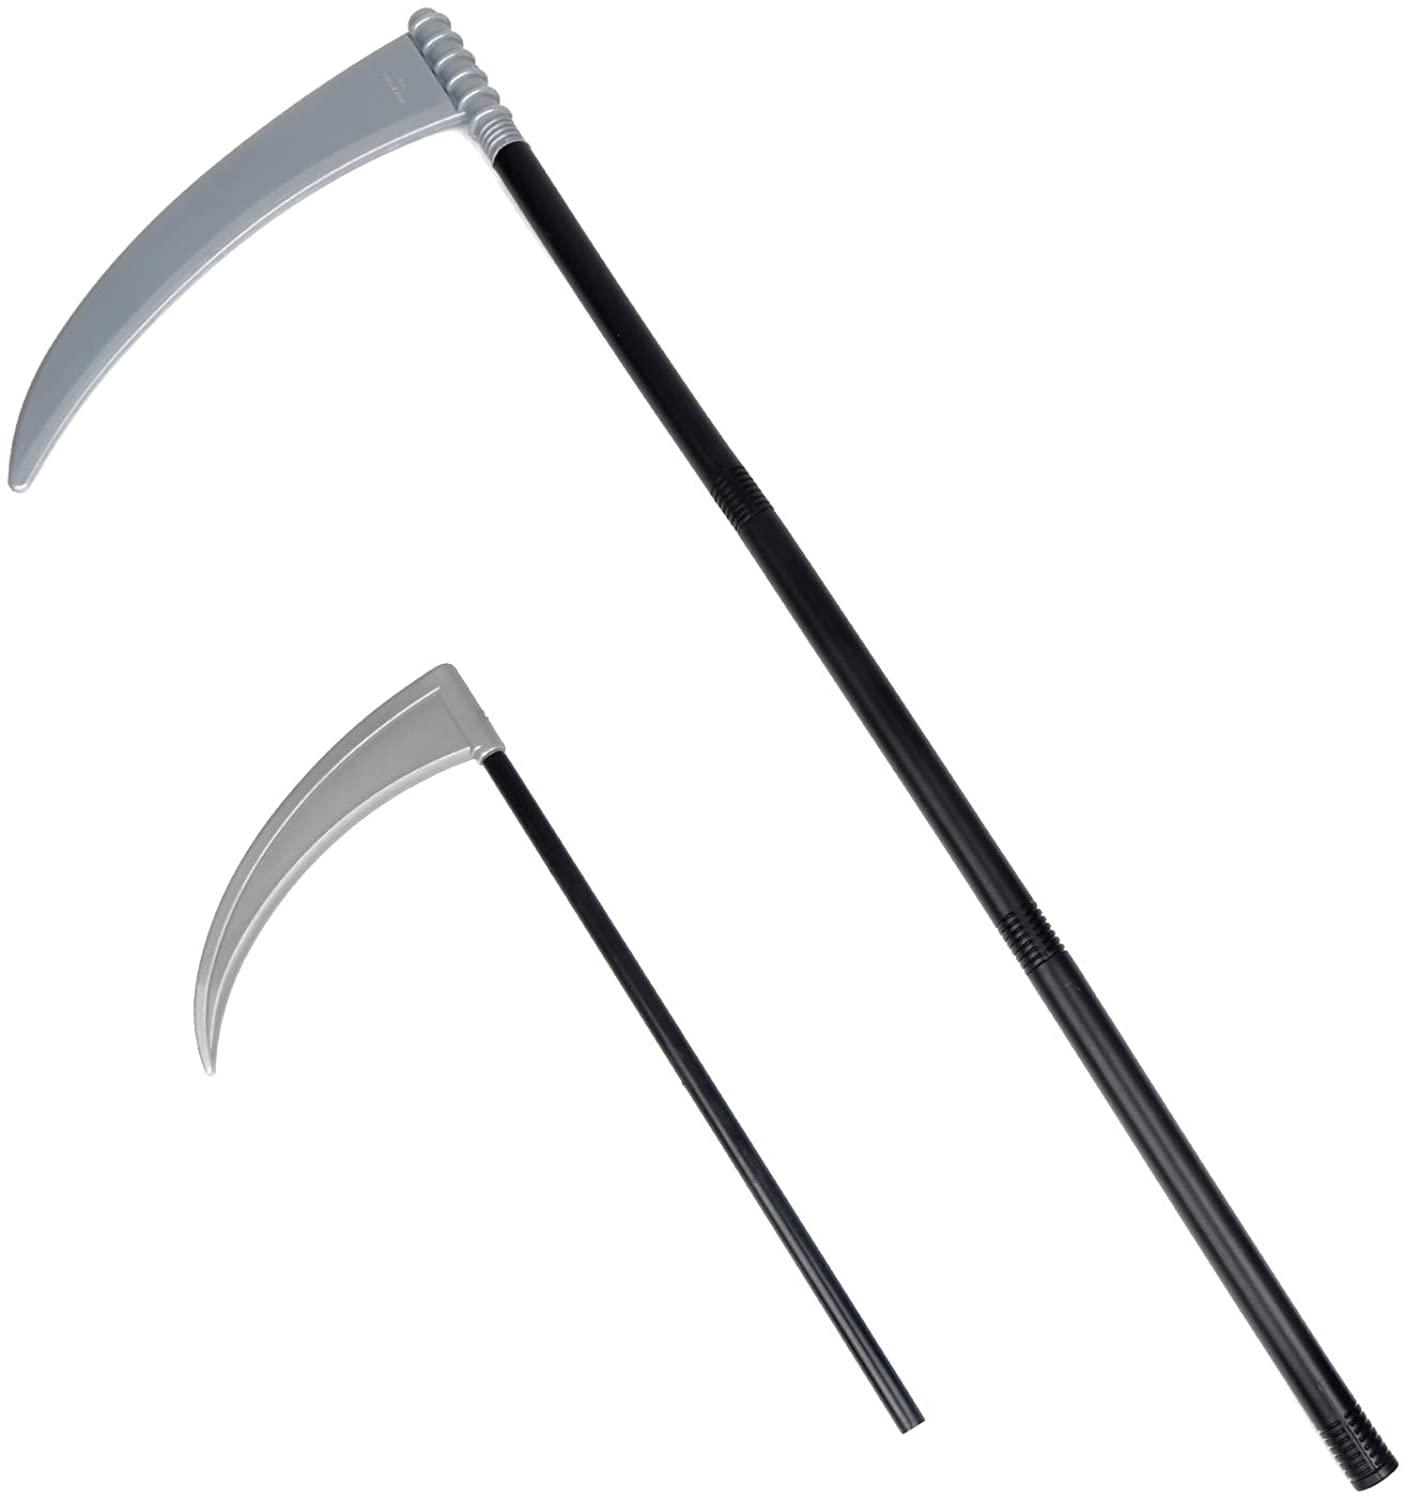 DIYASY 2 Pack Grim Reaper Scythe,Tall and Short Plastic Scythe Weapon for Kids and Adult Halloween Death Costume Accessories